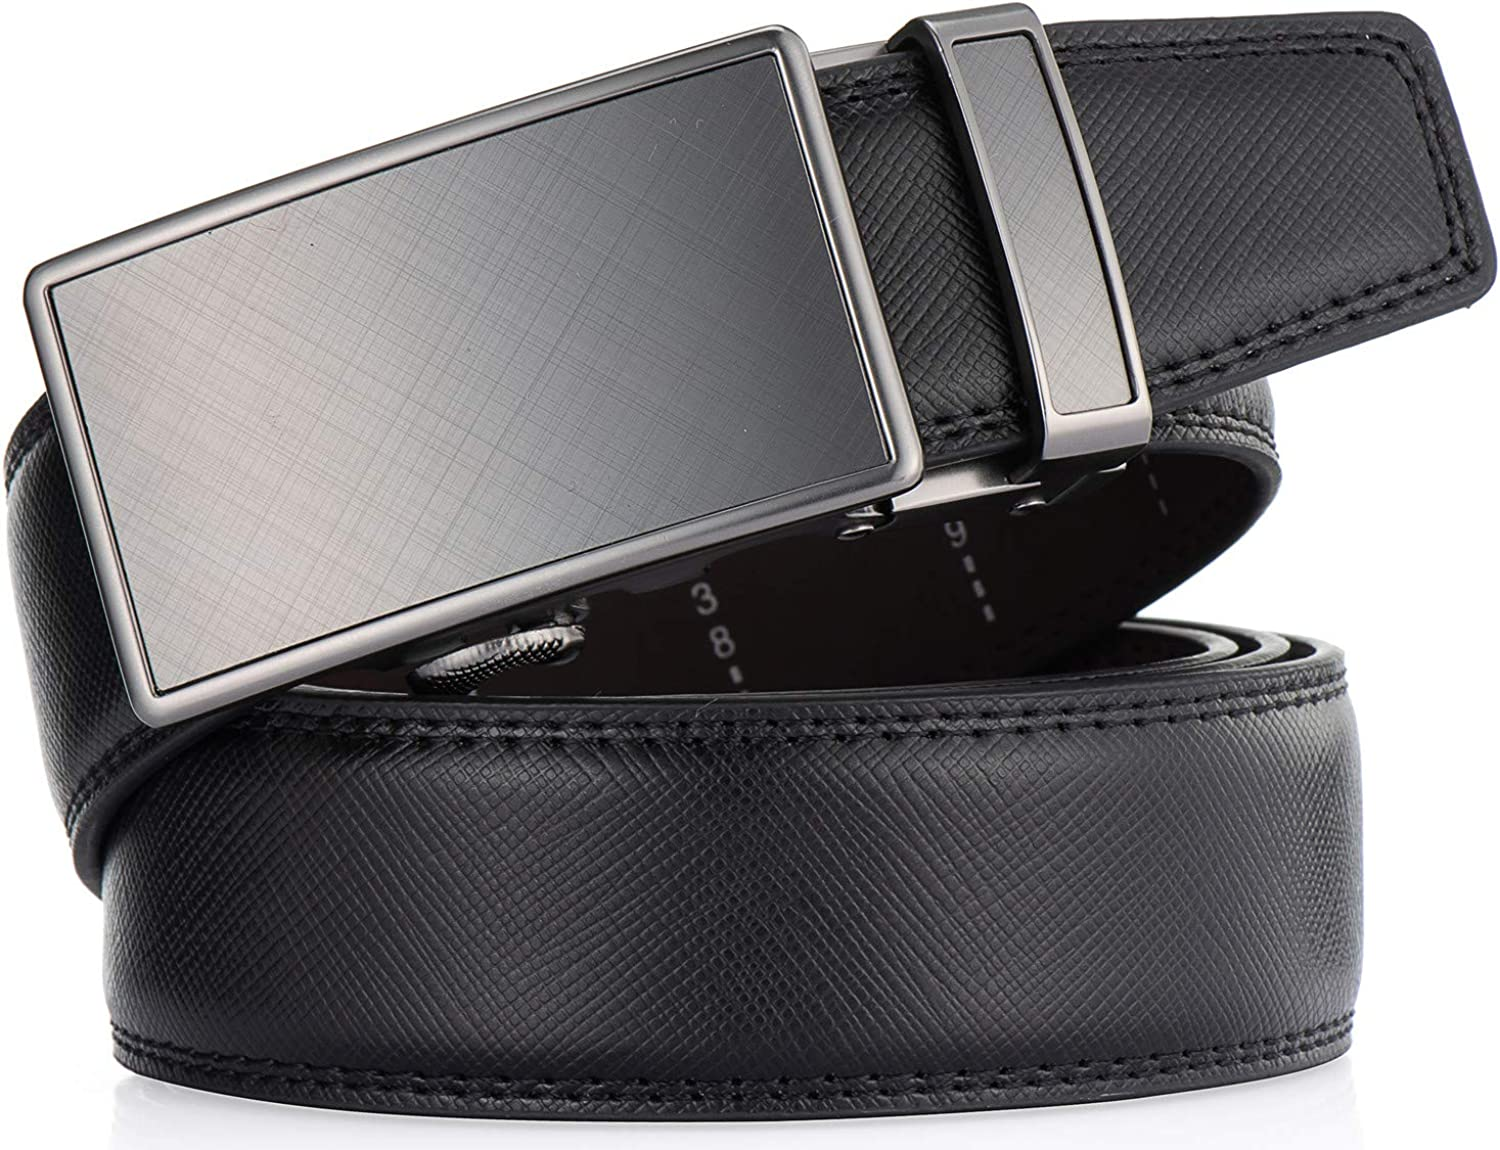 Enclosed in an Elegant Gift Box Mens Belt Autolock Leather Ratchet Dress Belt for Men With Automatic Buckle